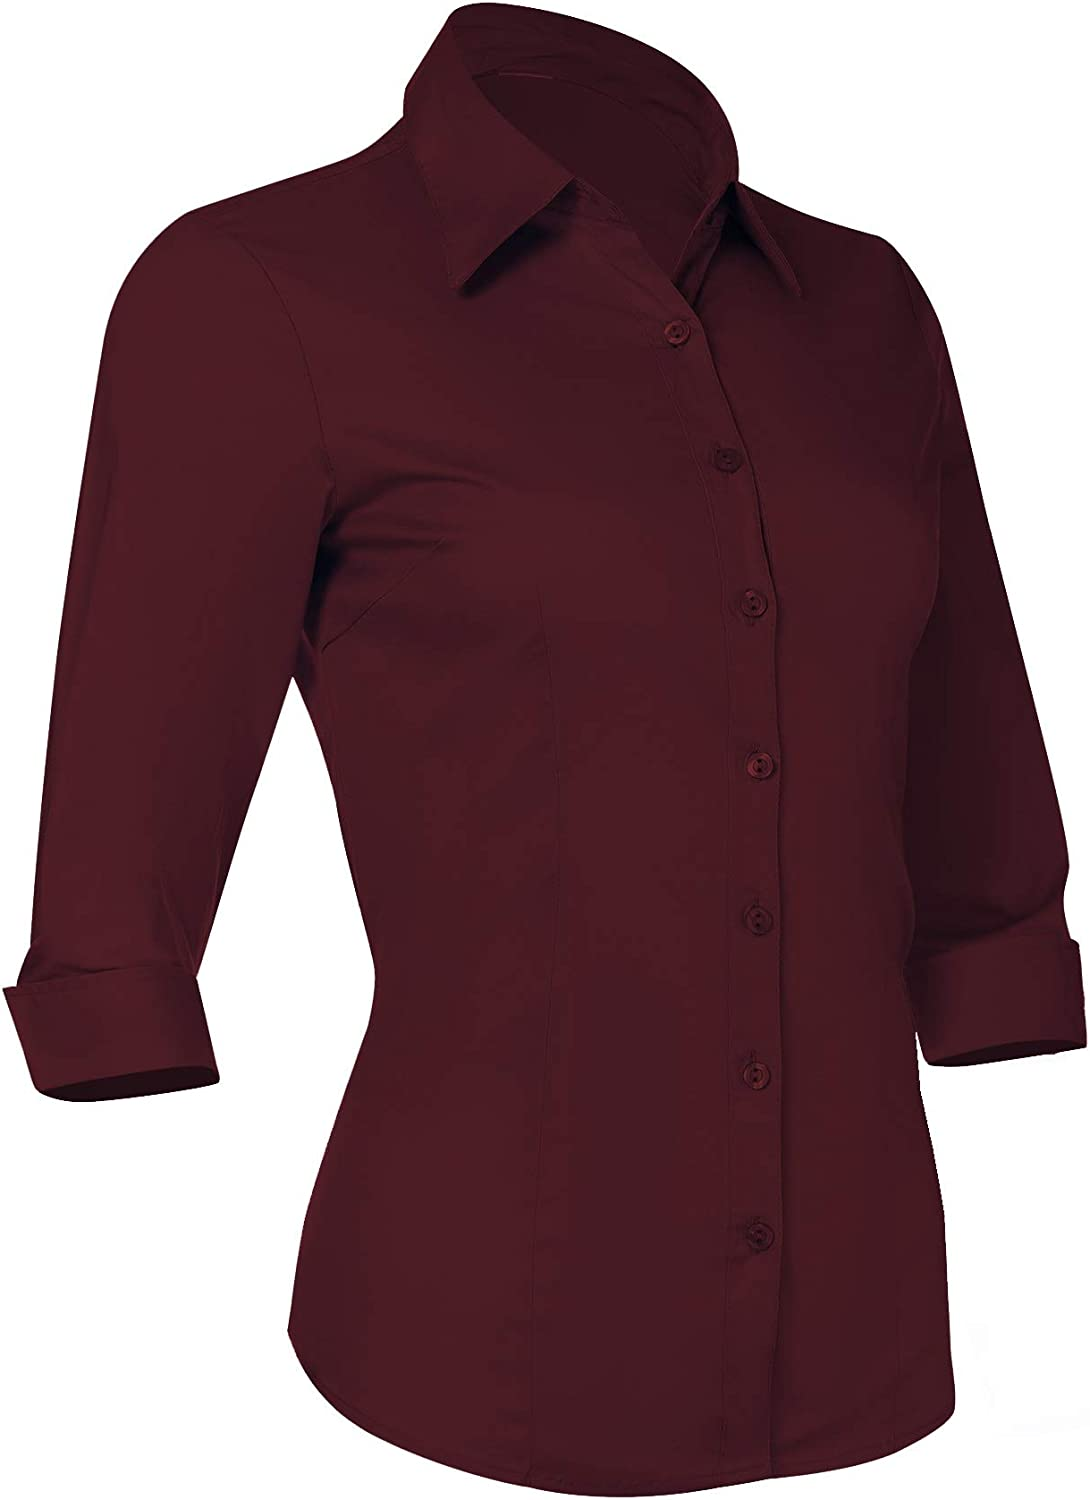 Pier 17 Button Down Shirts for Women, Fitted Long Sleeve Tailored Shirt Blouse